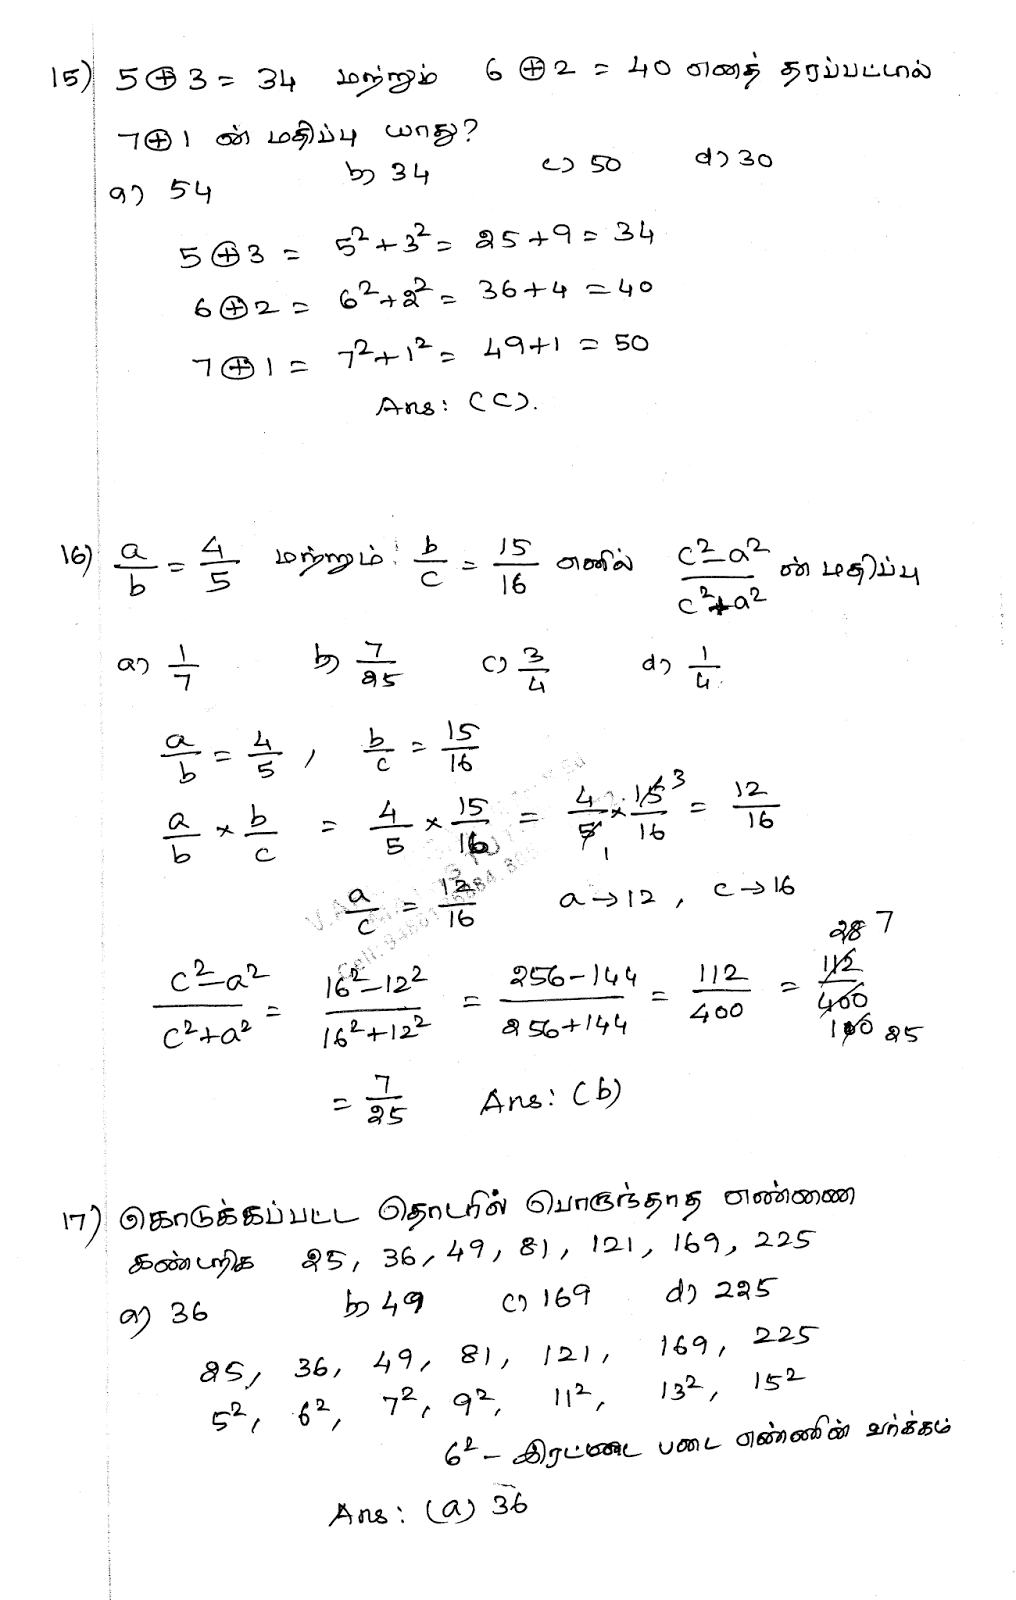 TNPSC - GROUP2 NON INTERVIEW - 2016 EXAM (DATE: 24.1.2016) QUESTIONS - 7